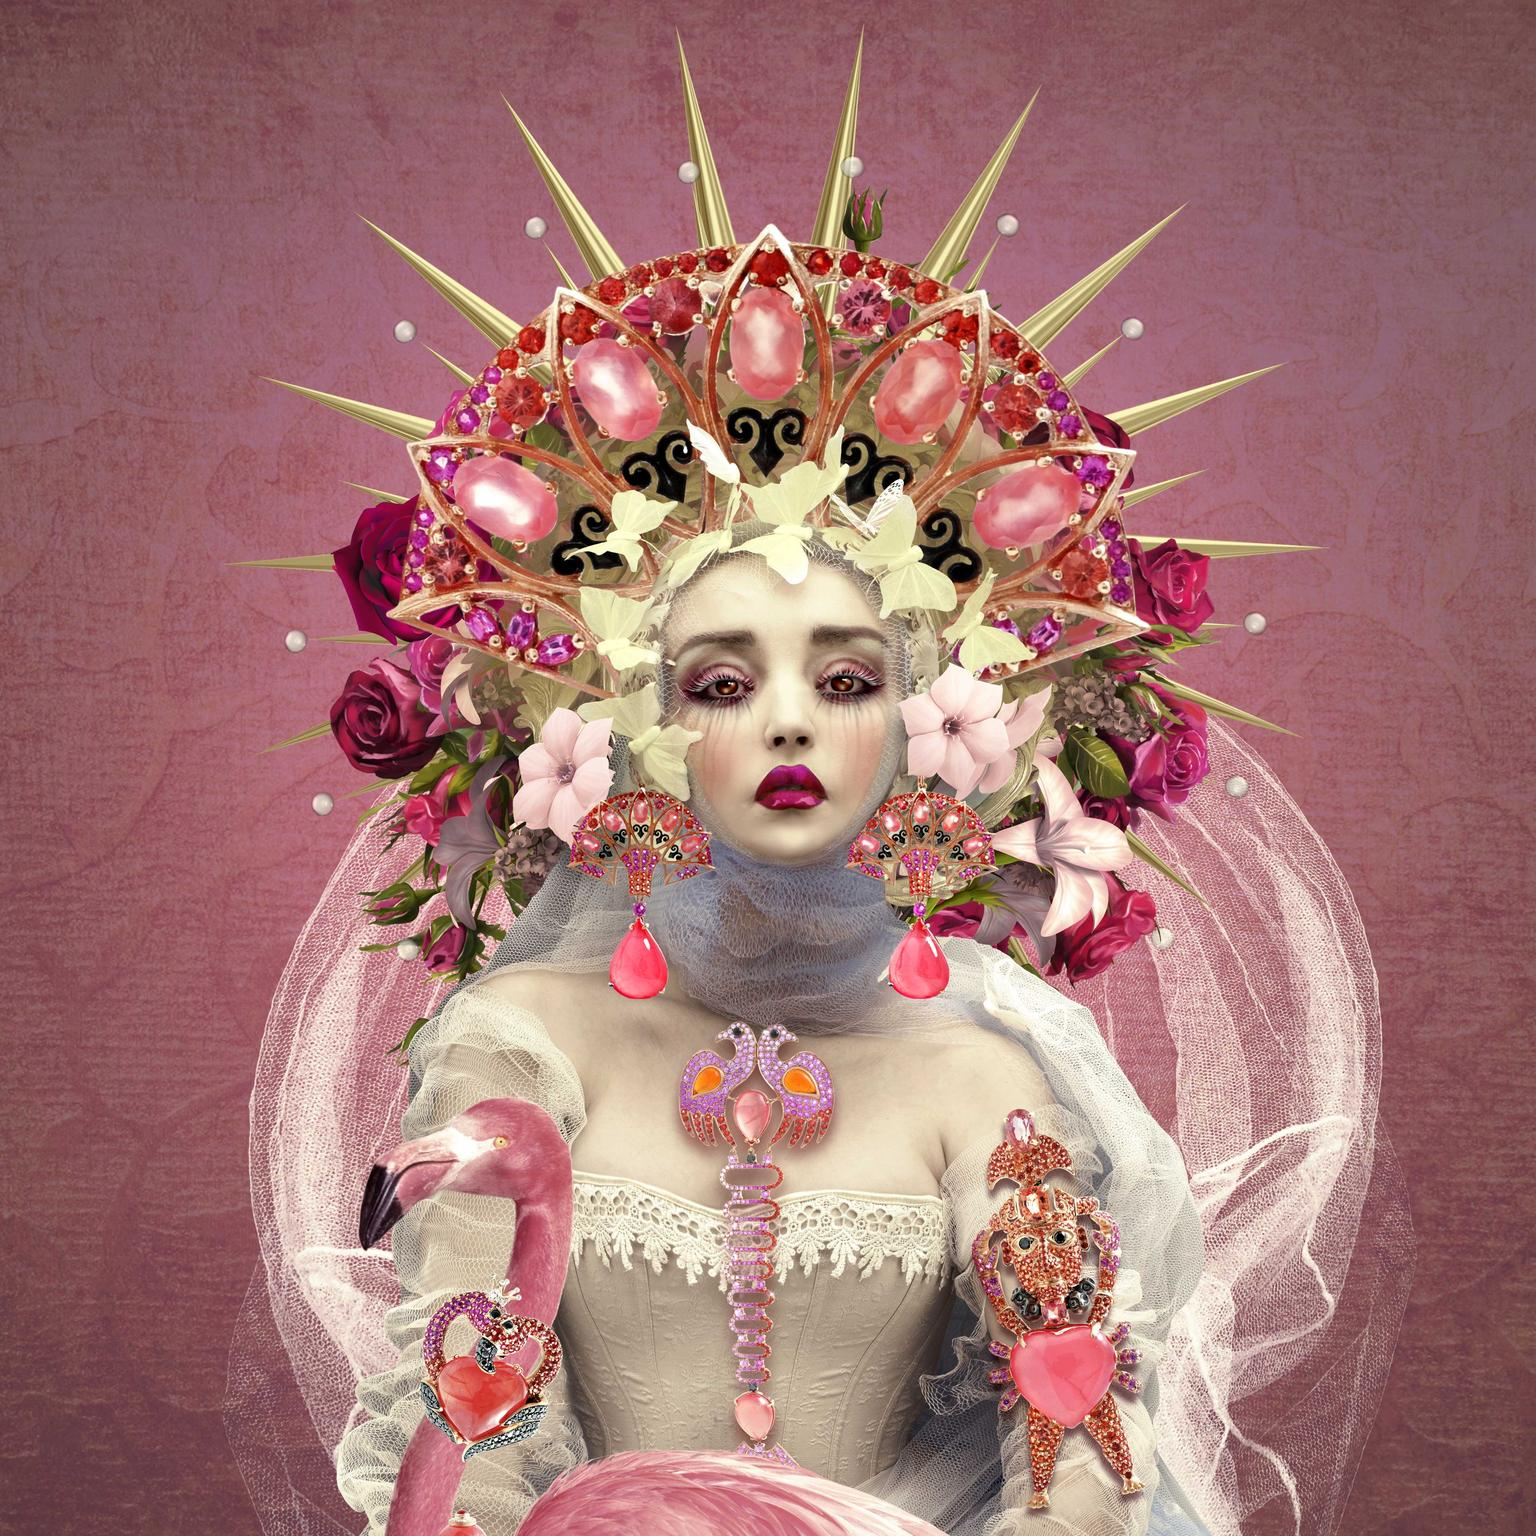 Lydia Courteille Rosa del Inca illustration by Natalie Shau